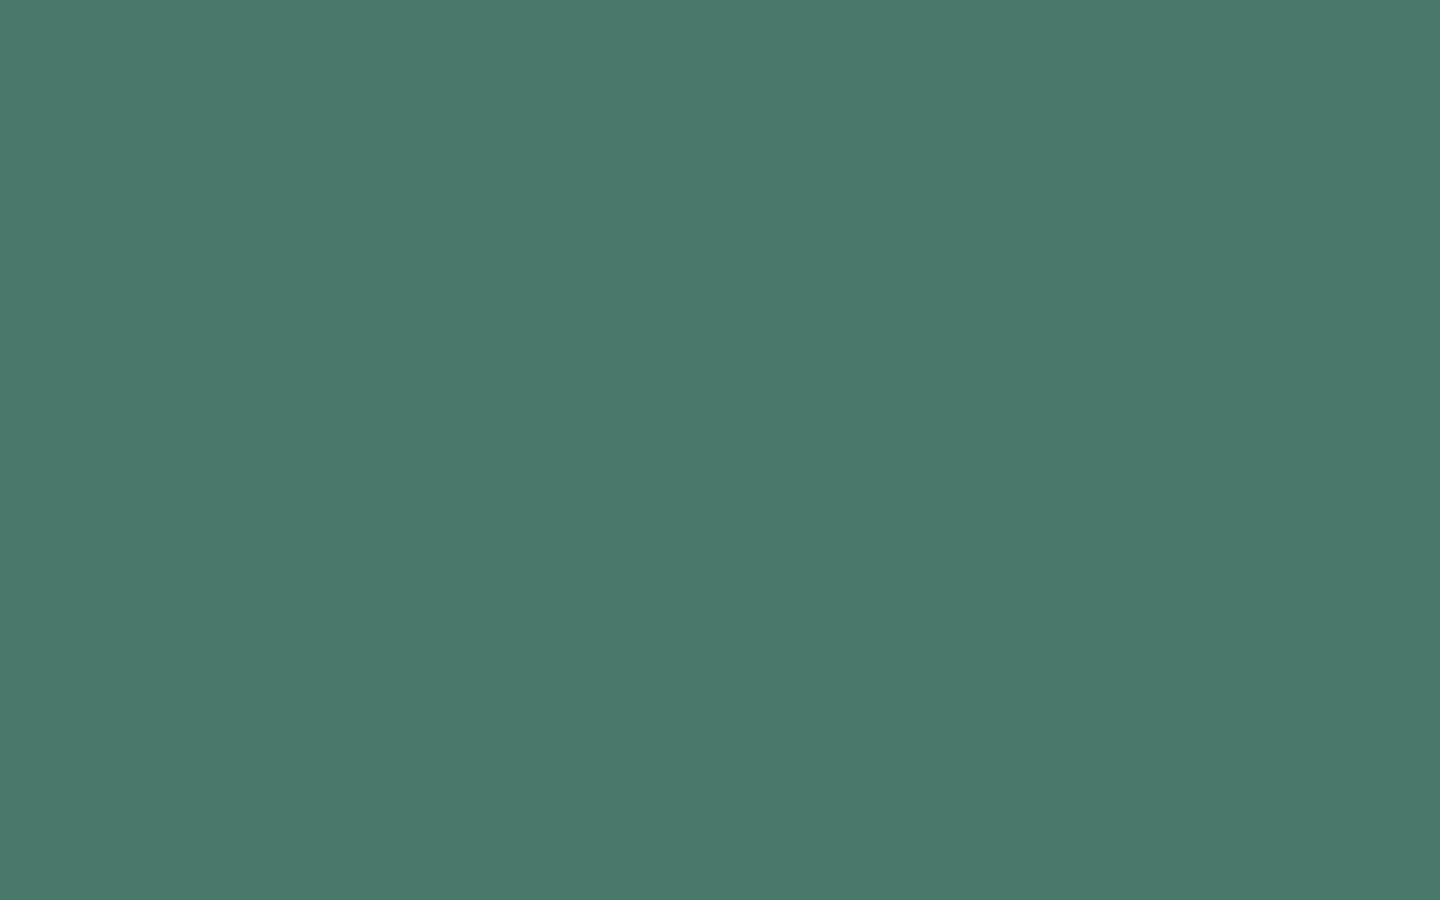 1440x900 Hookers Green Solid Color Background